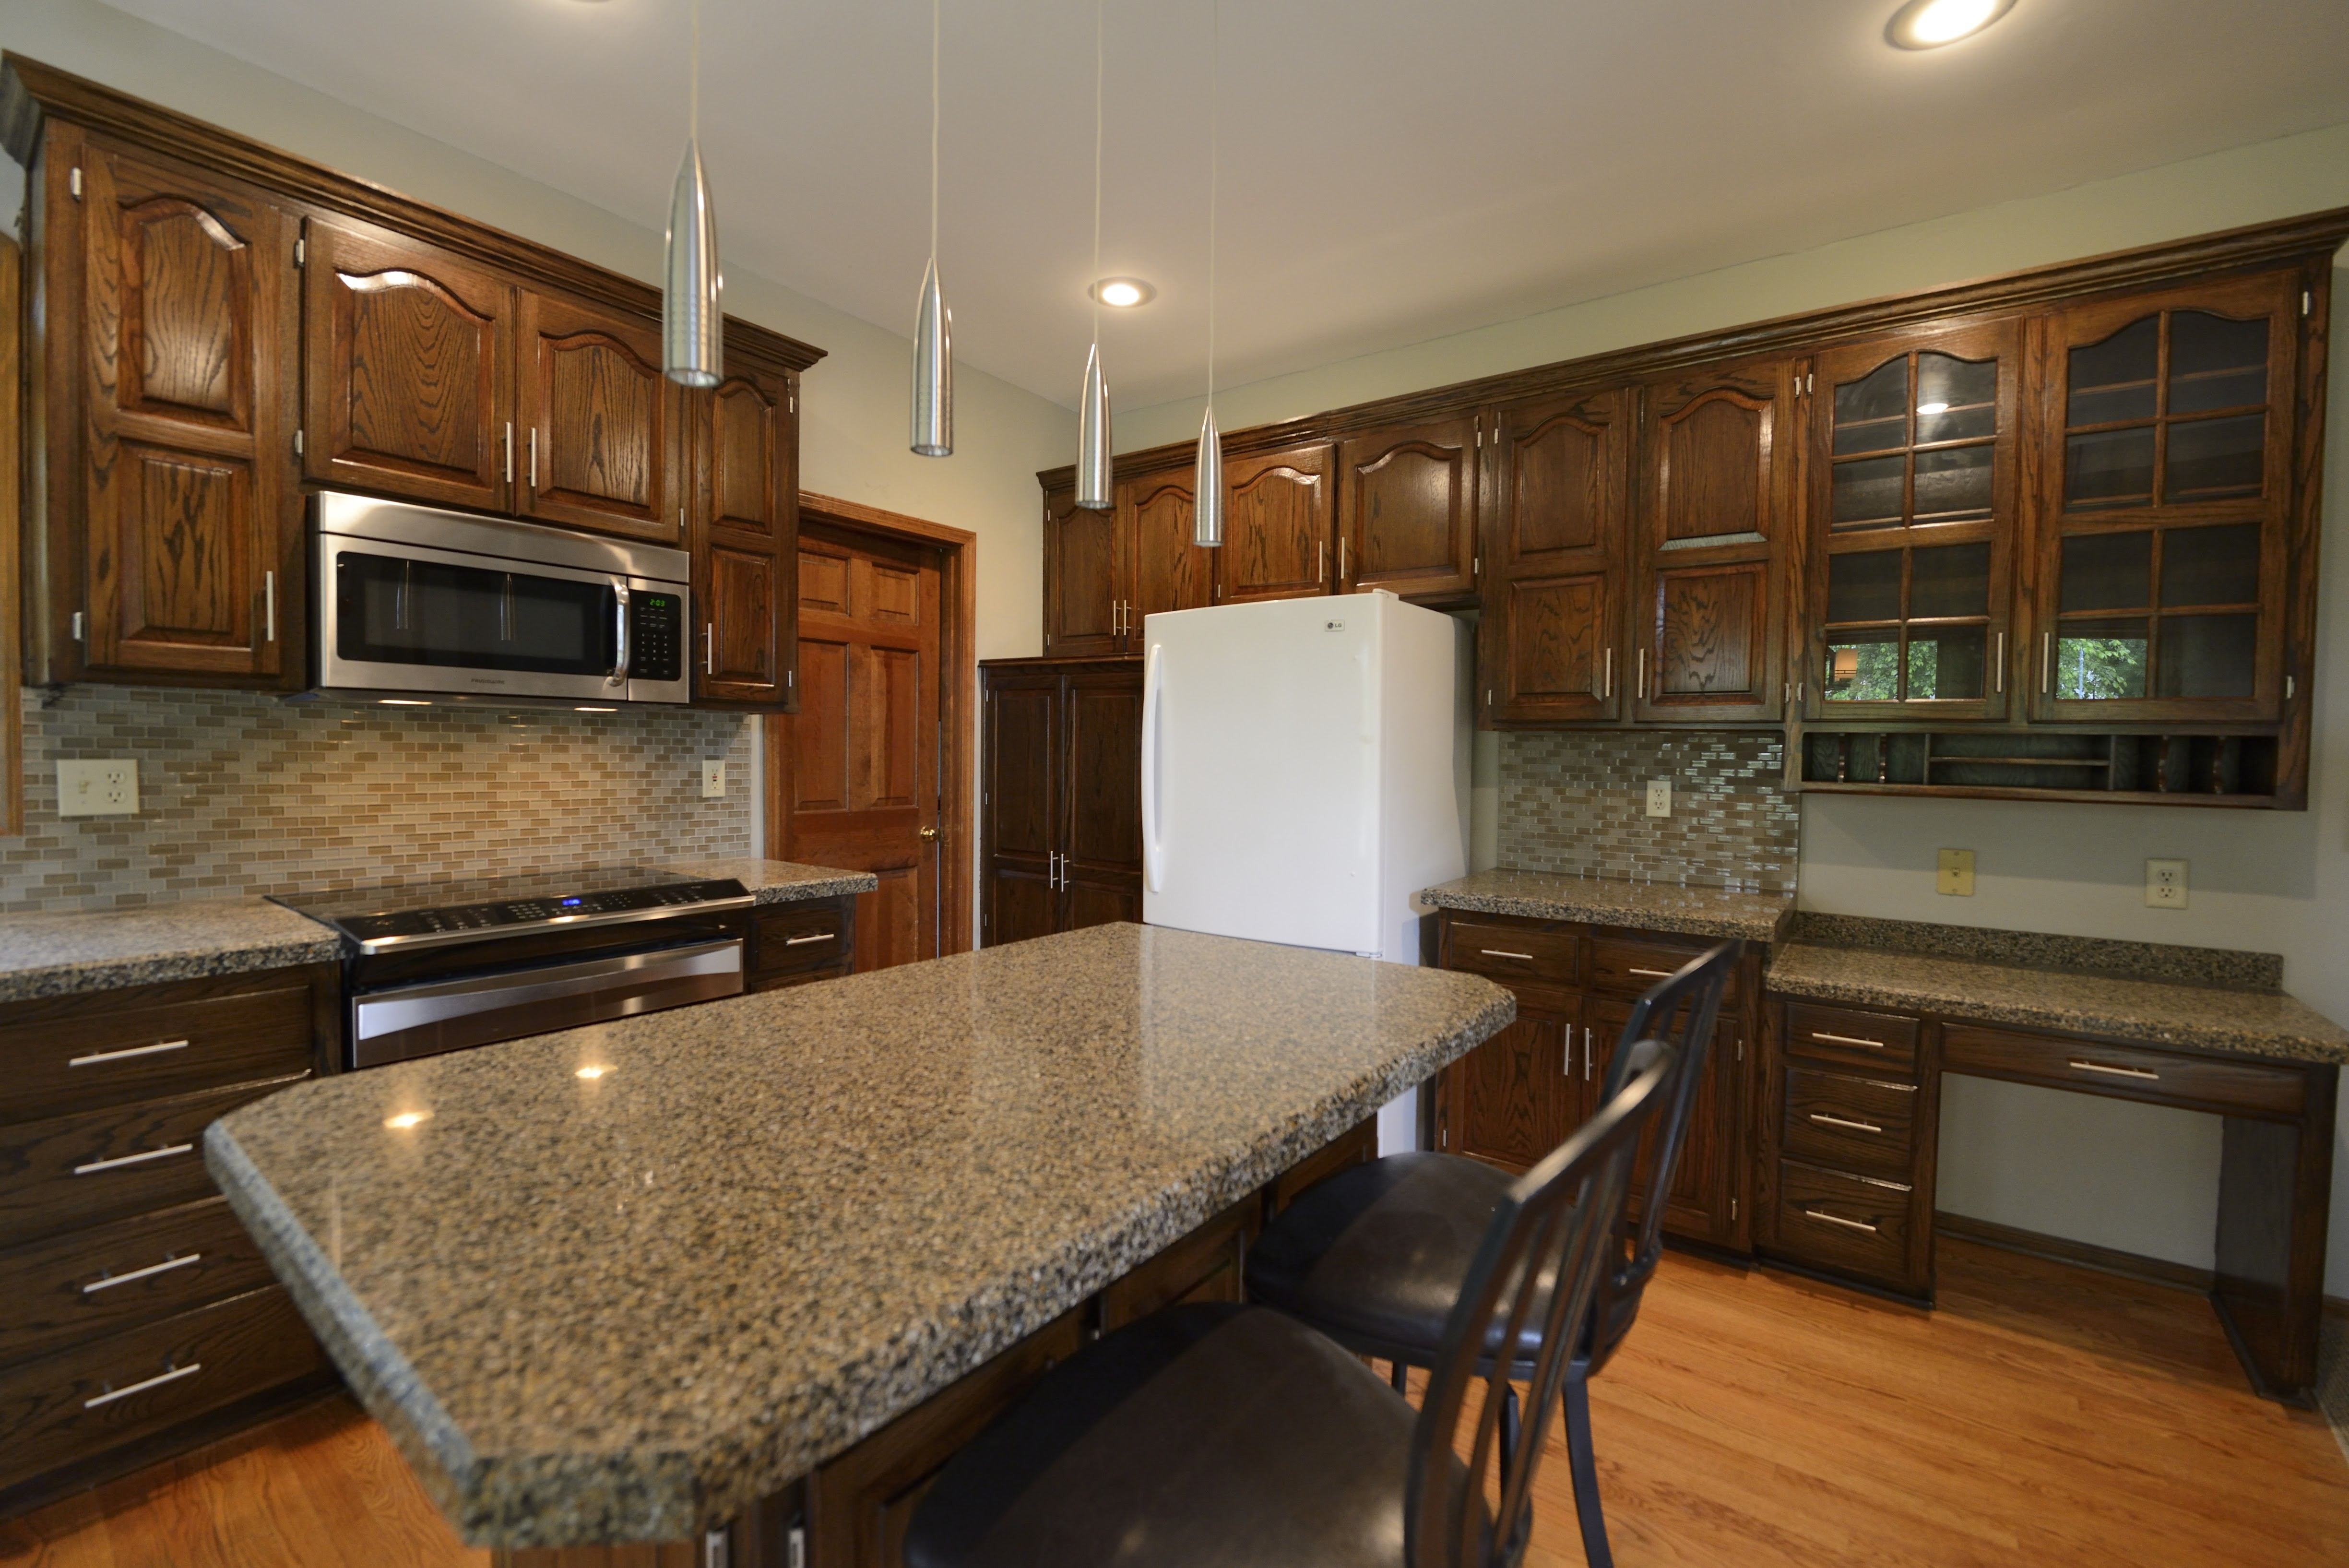 Remodeled Cabinets After Artisan Construction 7321 N Antioch Gladstone MO 641192